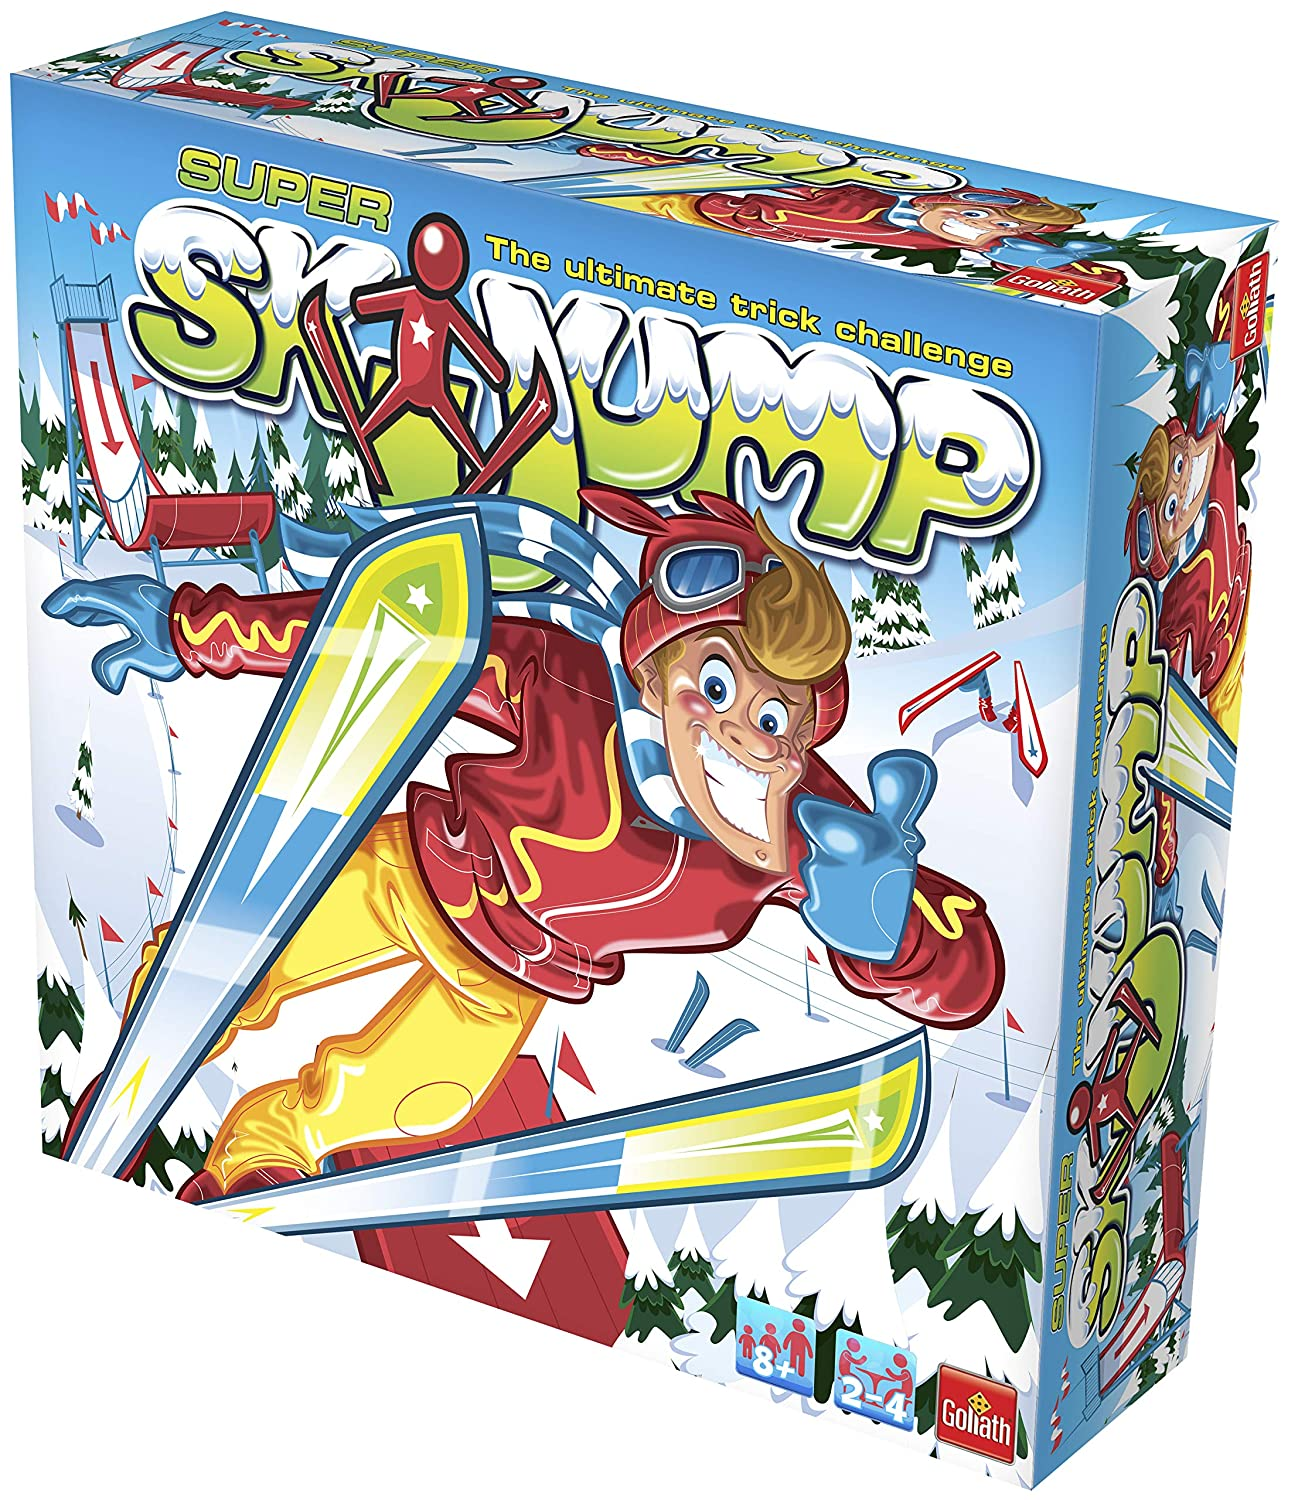 Goliath 70005 Game Can You Master The Slippery Slopes of The Super Ski Jump Drumond Park